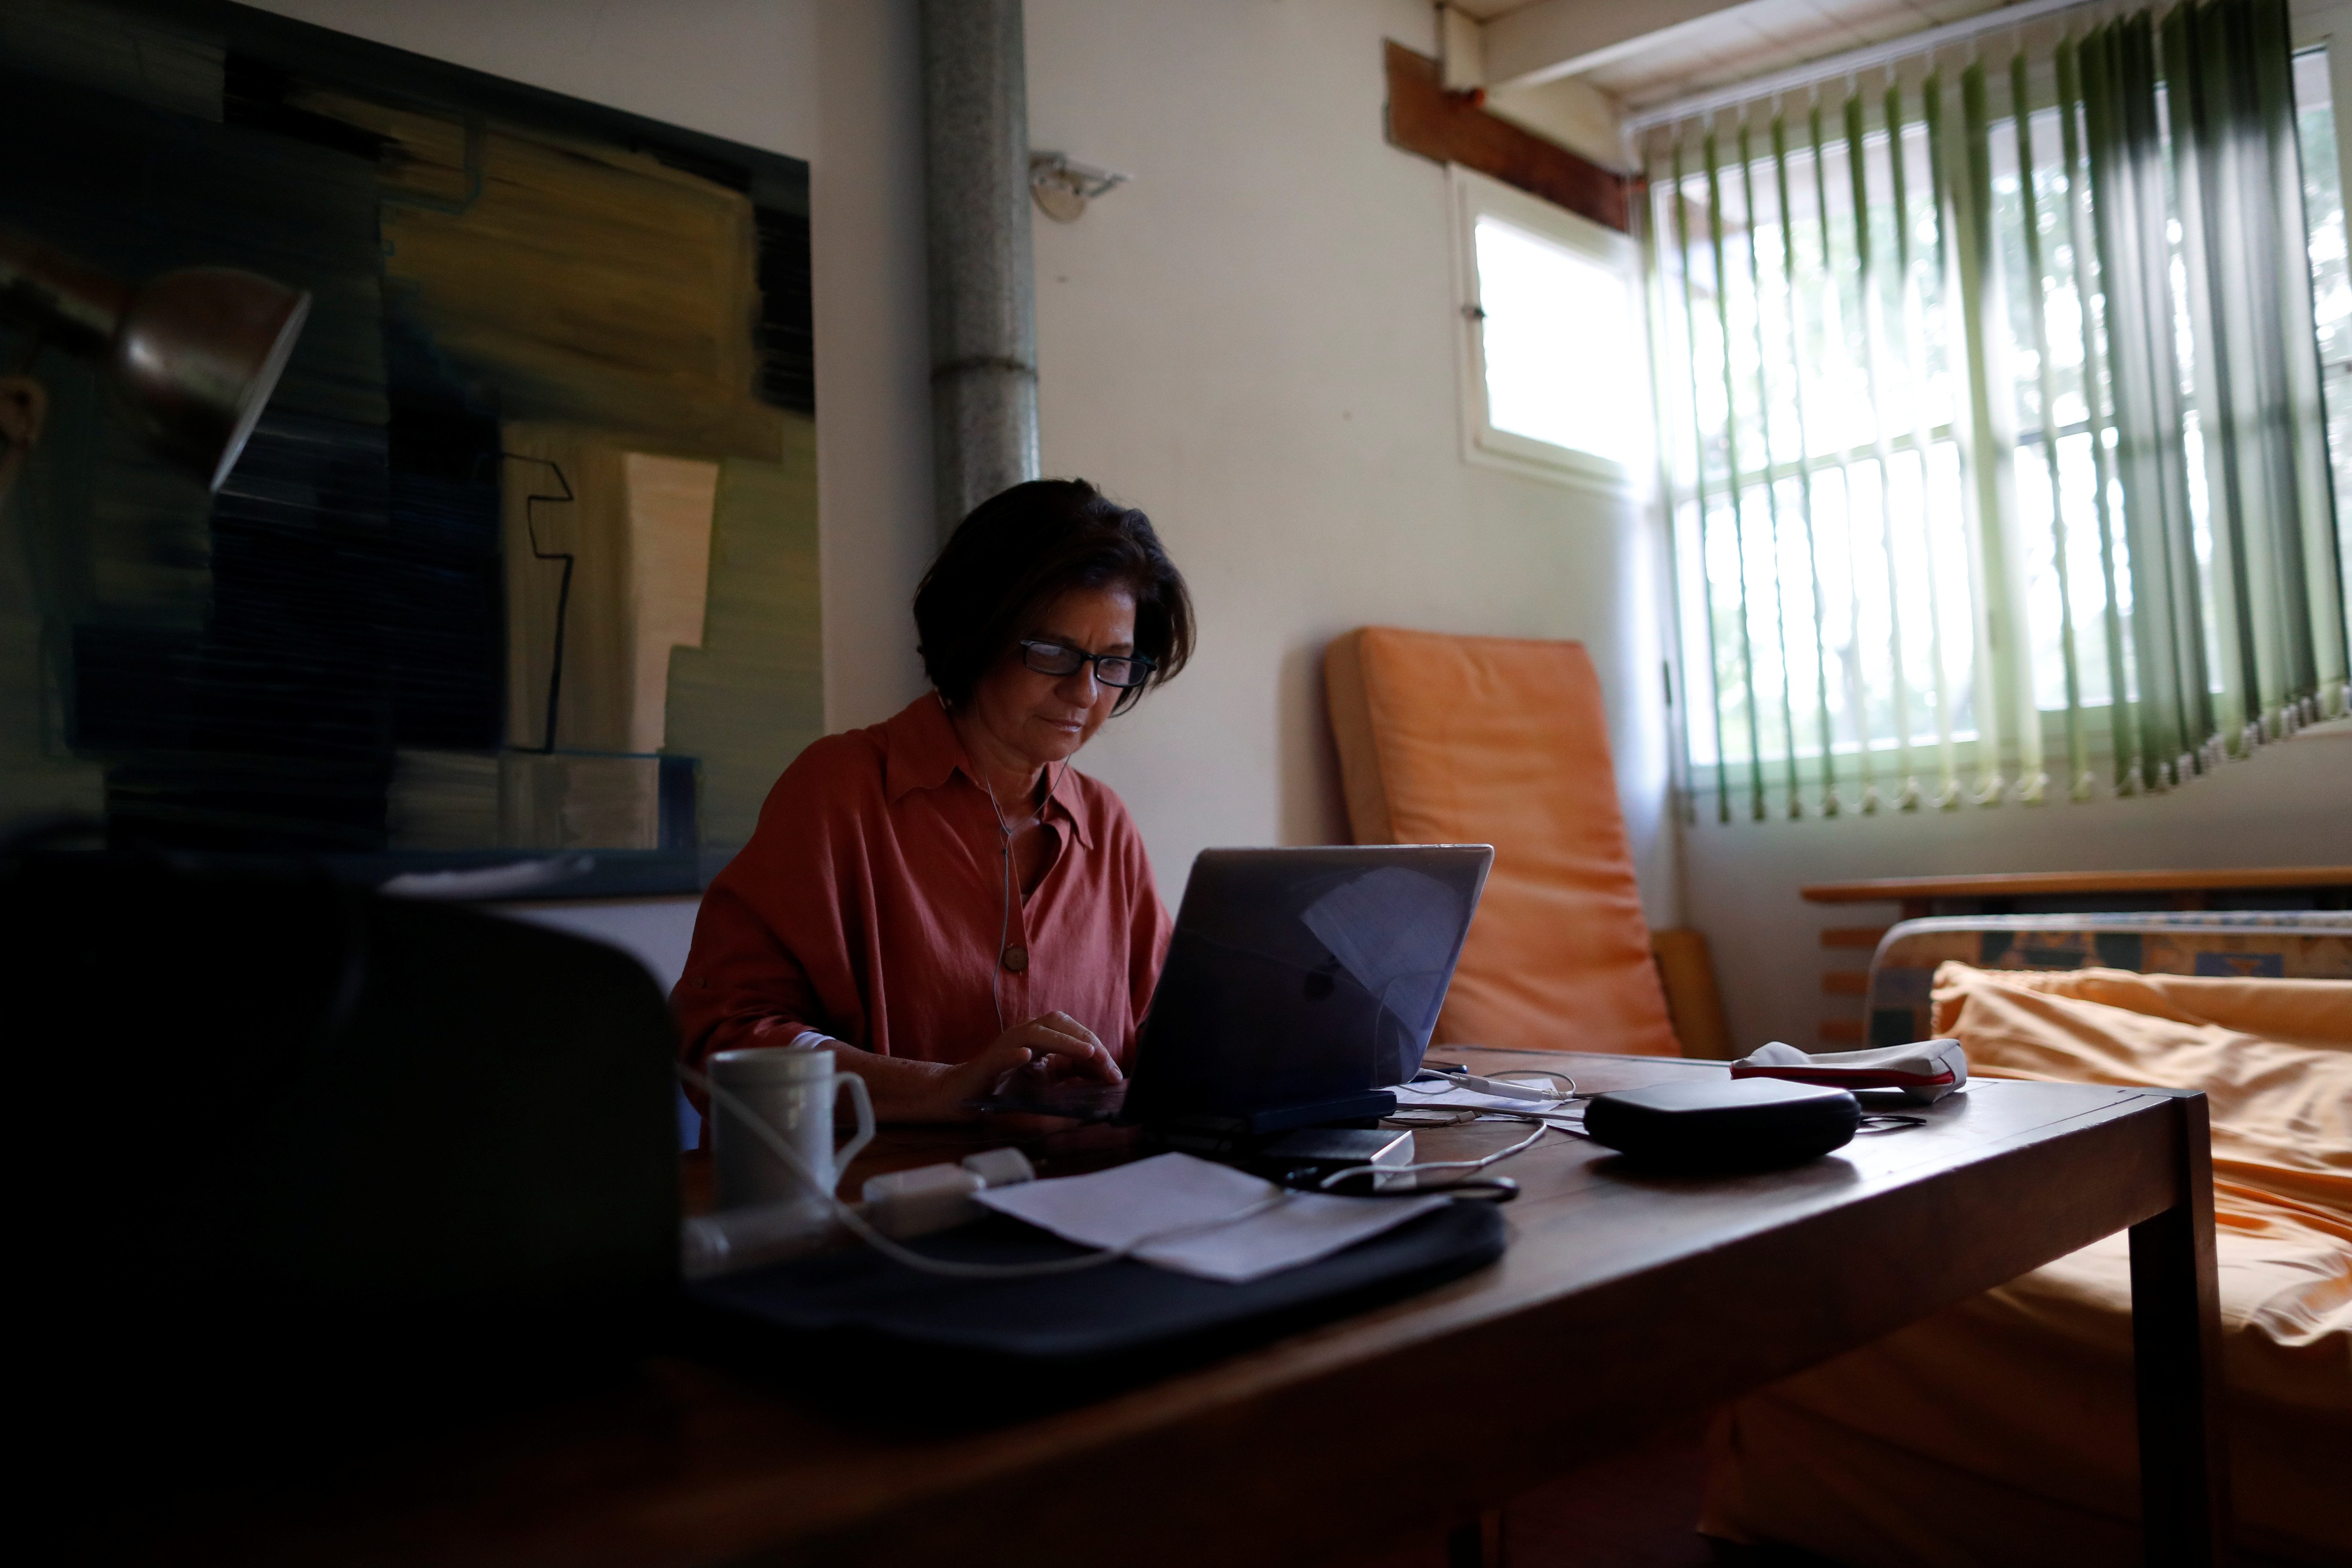 Psychoanalyst Roxana Meygide Schargorodsky works by video call with a patient, at her home in Buenos Aires, Argentina April 7, 2020. Picture taken April 7, 2020